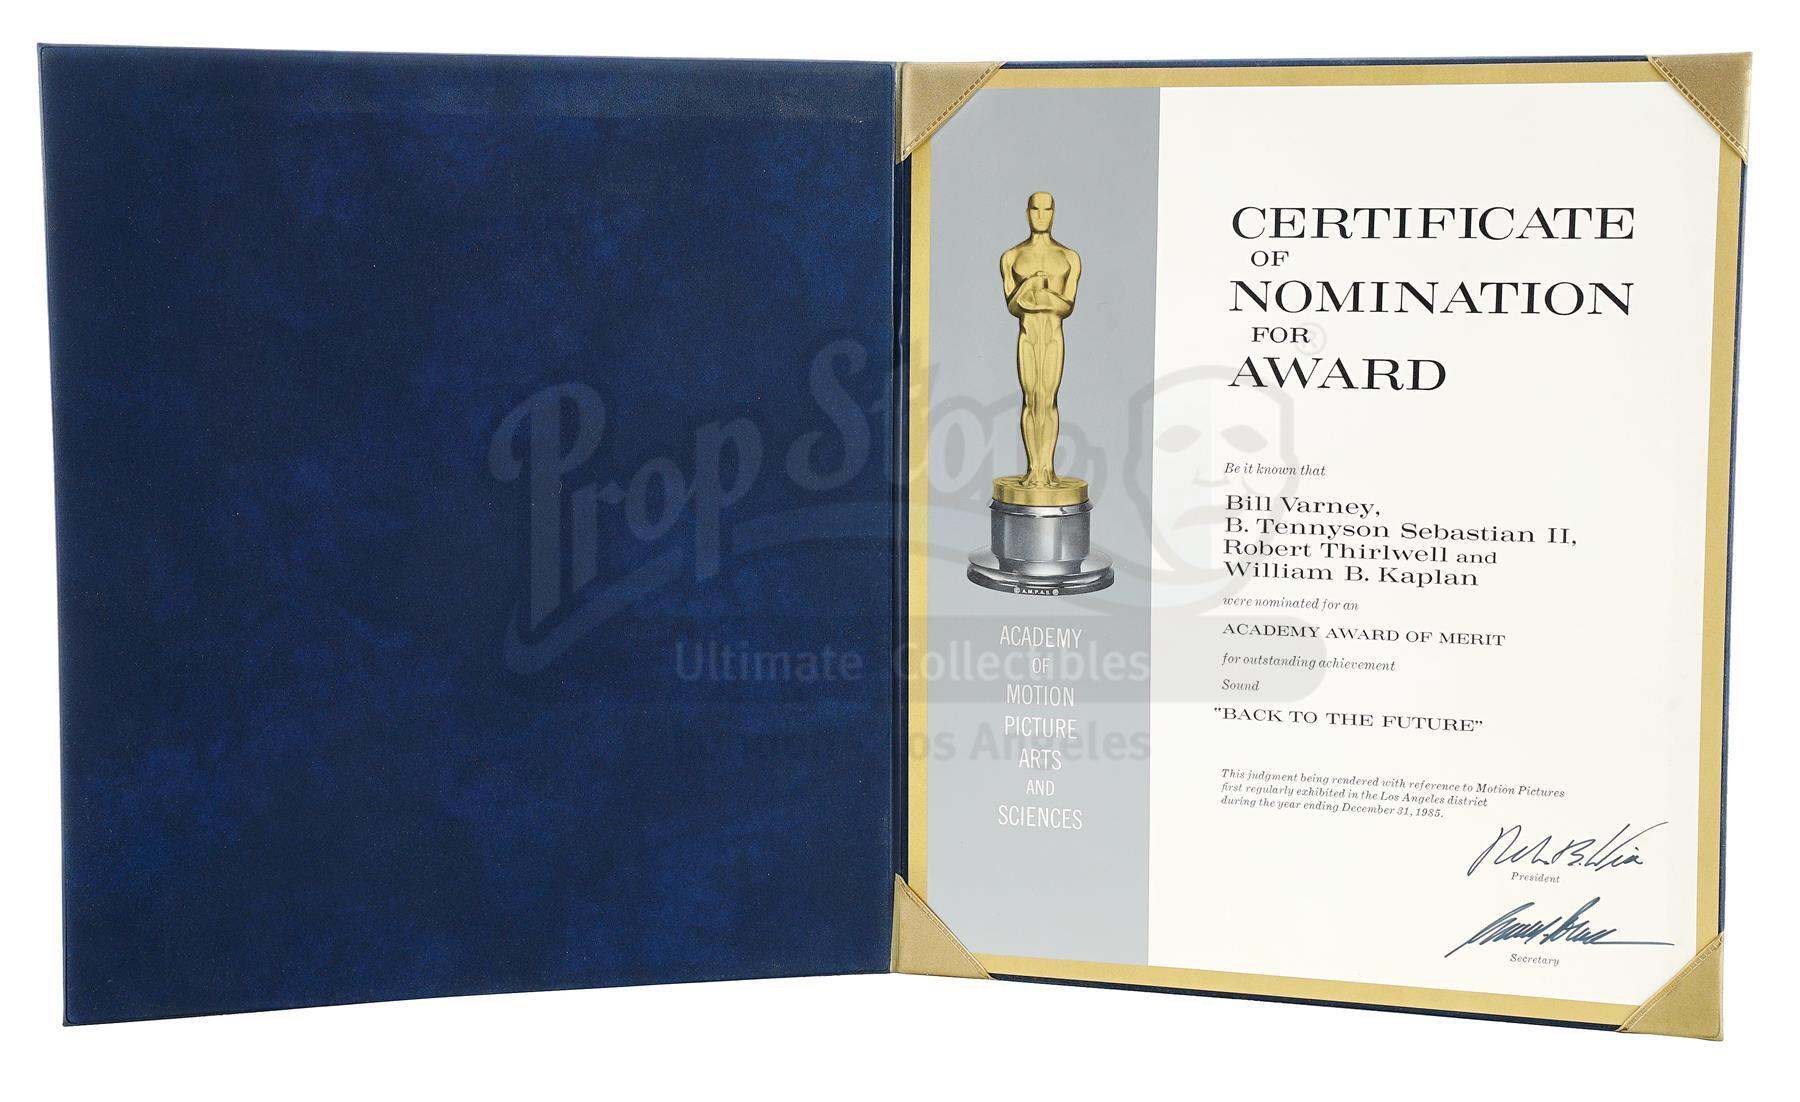 Lot # 488: BACK TO THE FUTURE - Academy Award Nomination Certificate